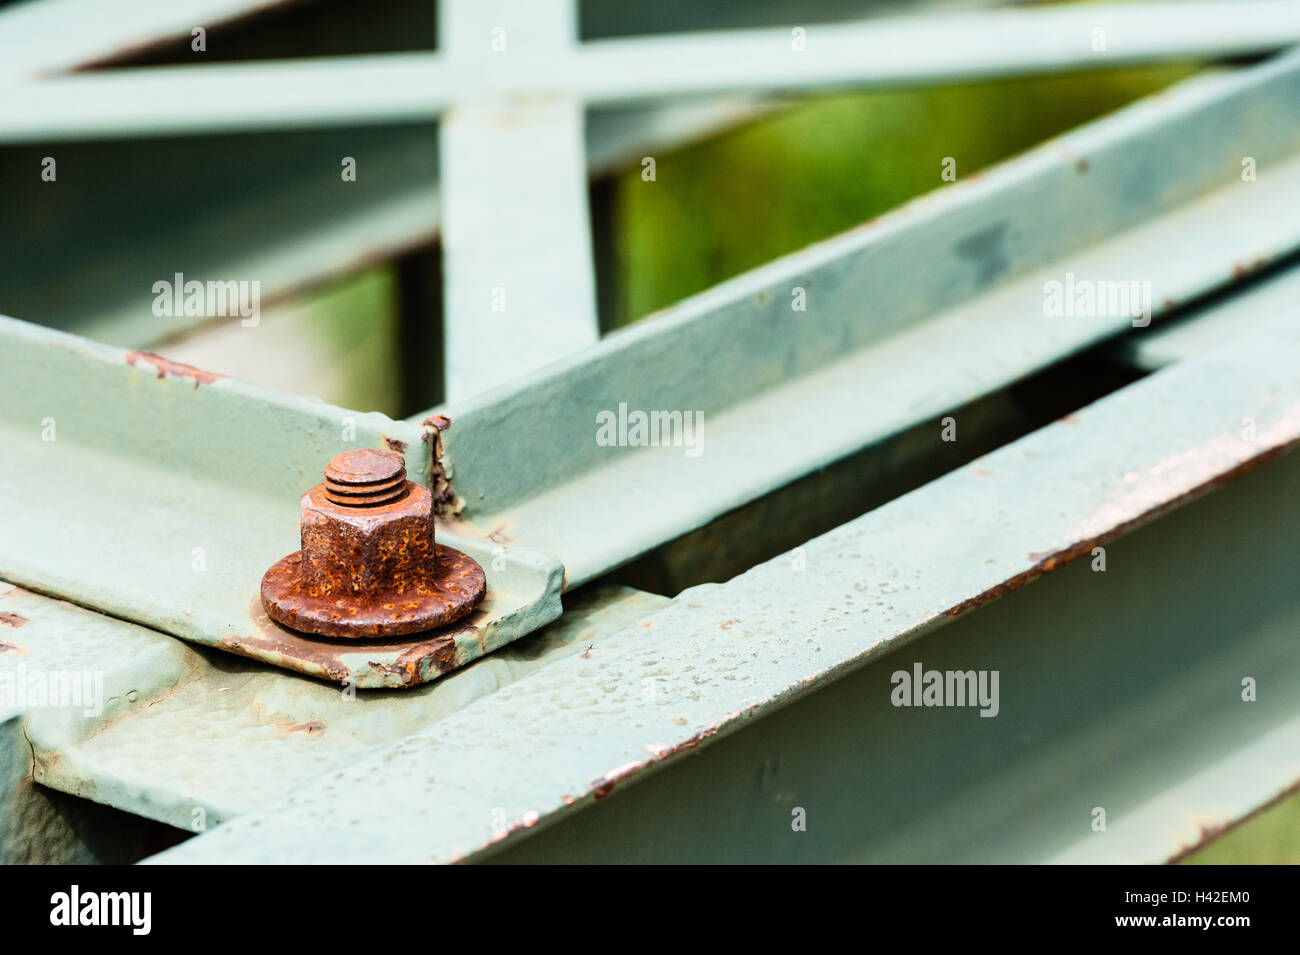 Detail of rusted hexagonal metal screw fastener on corner of painted steel bars and plates. Stock Photo